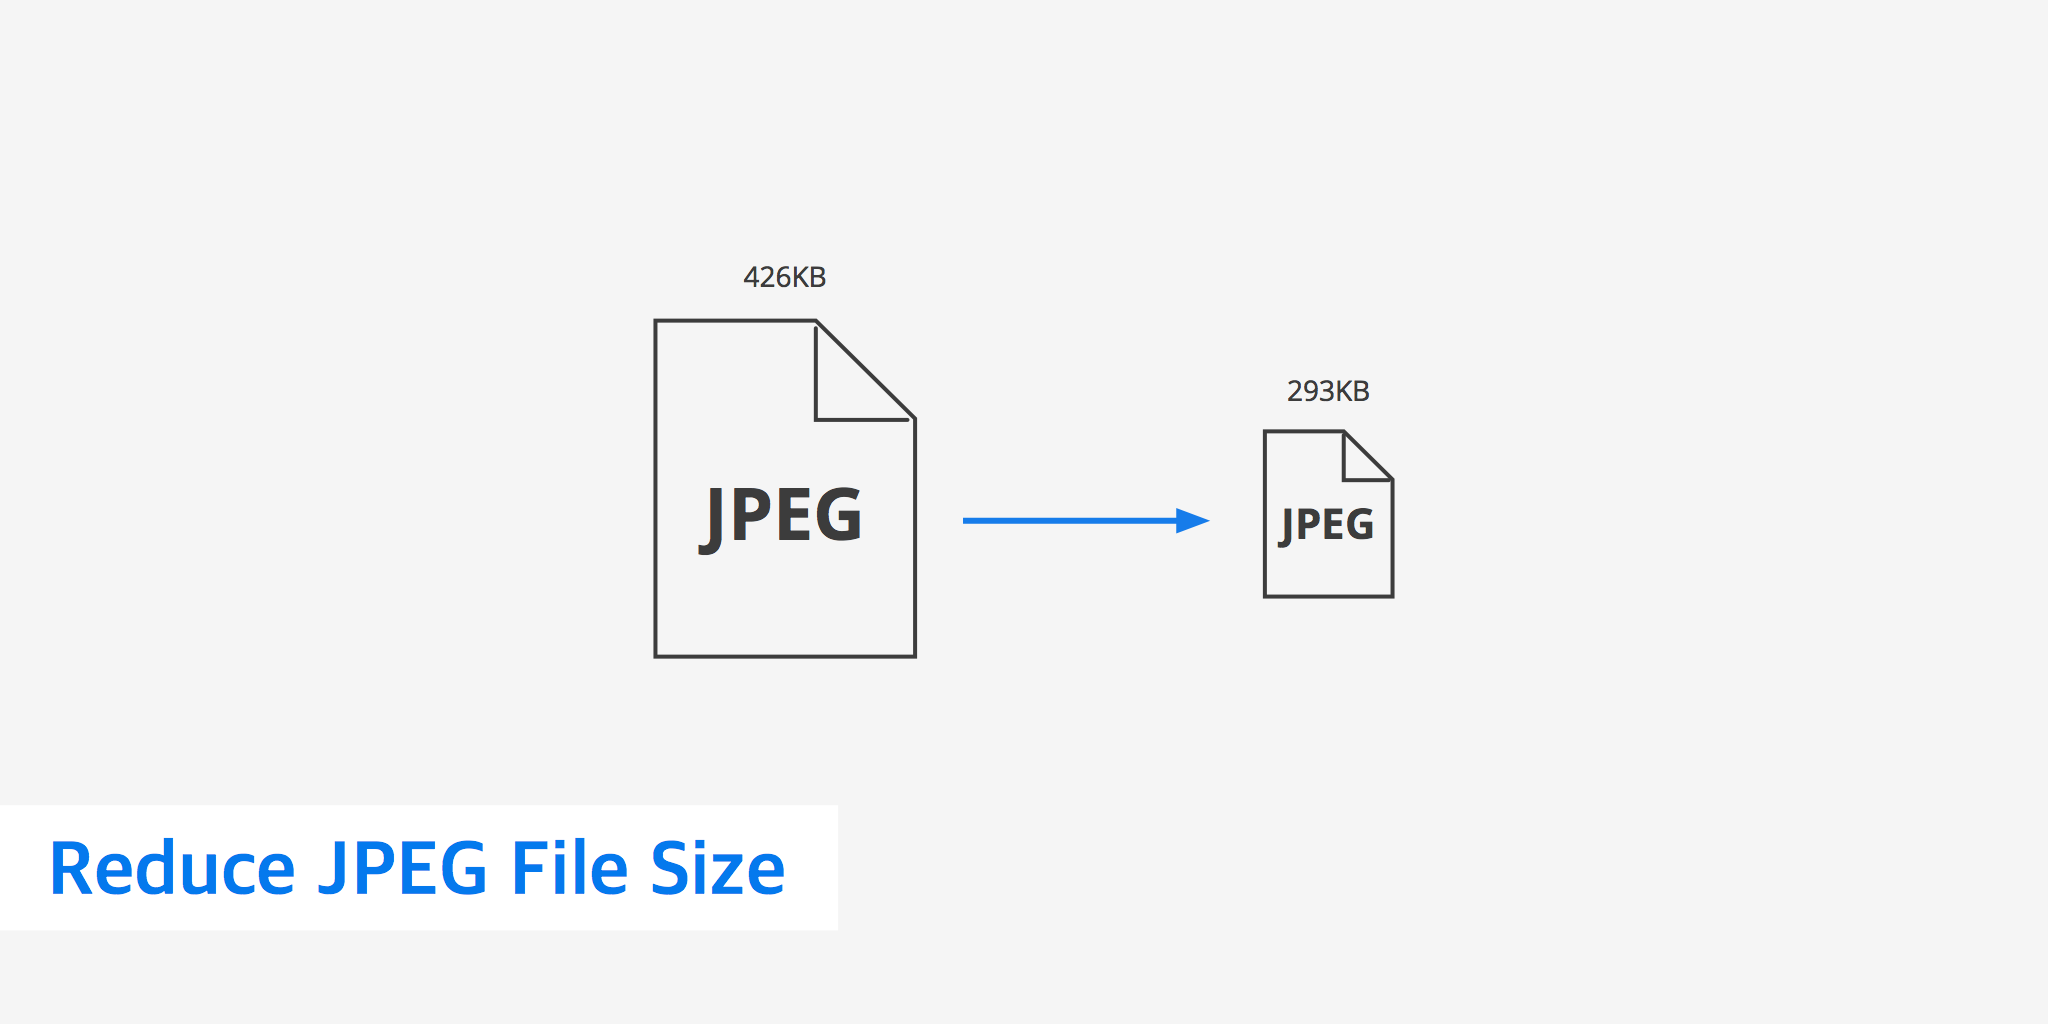 How to Reduce JPEG File Size - KeyCDN Support